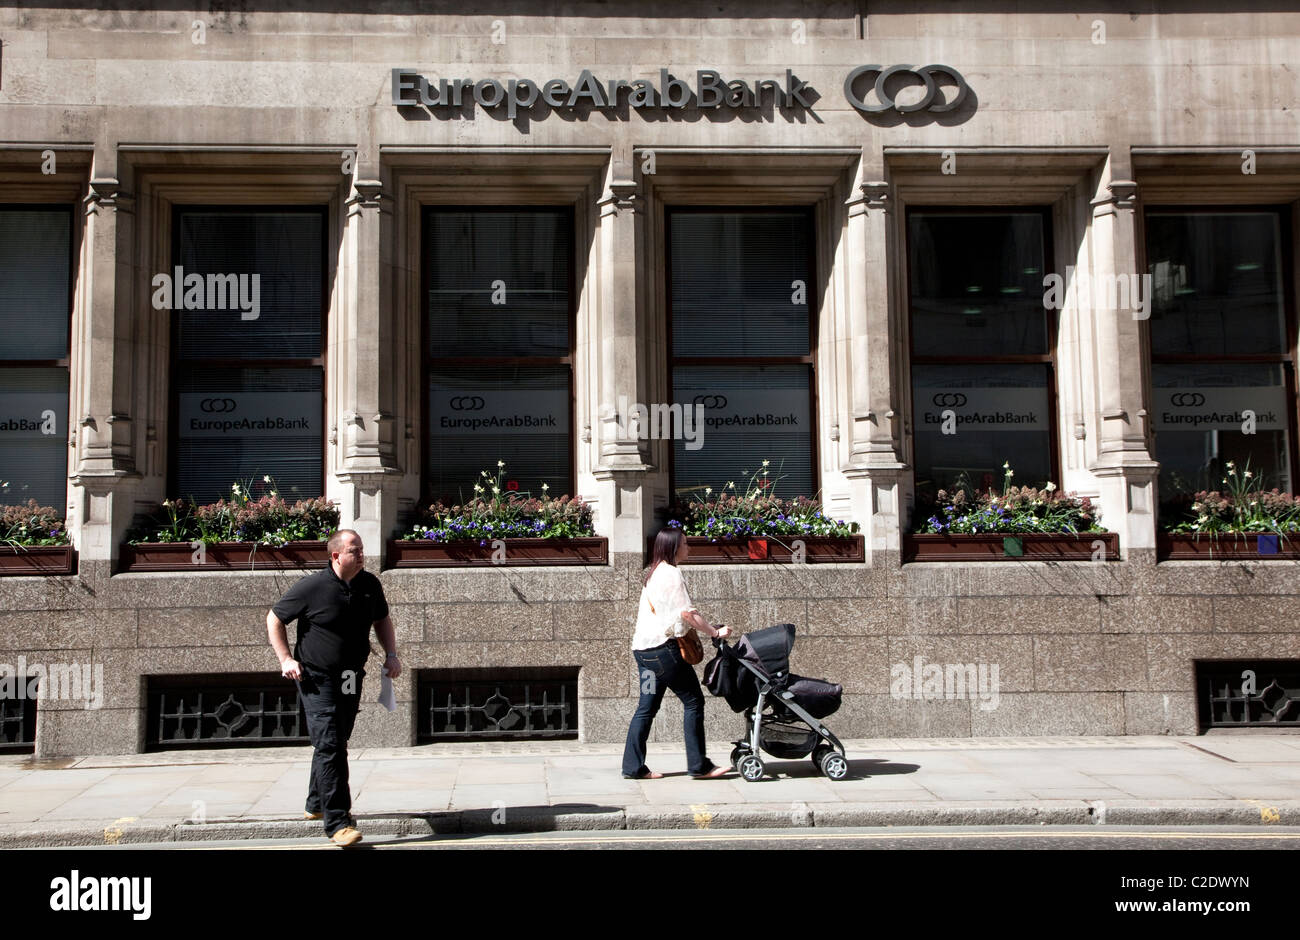 EuropeArab Bank, Moorgate, City of London - Stock Image